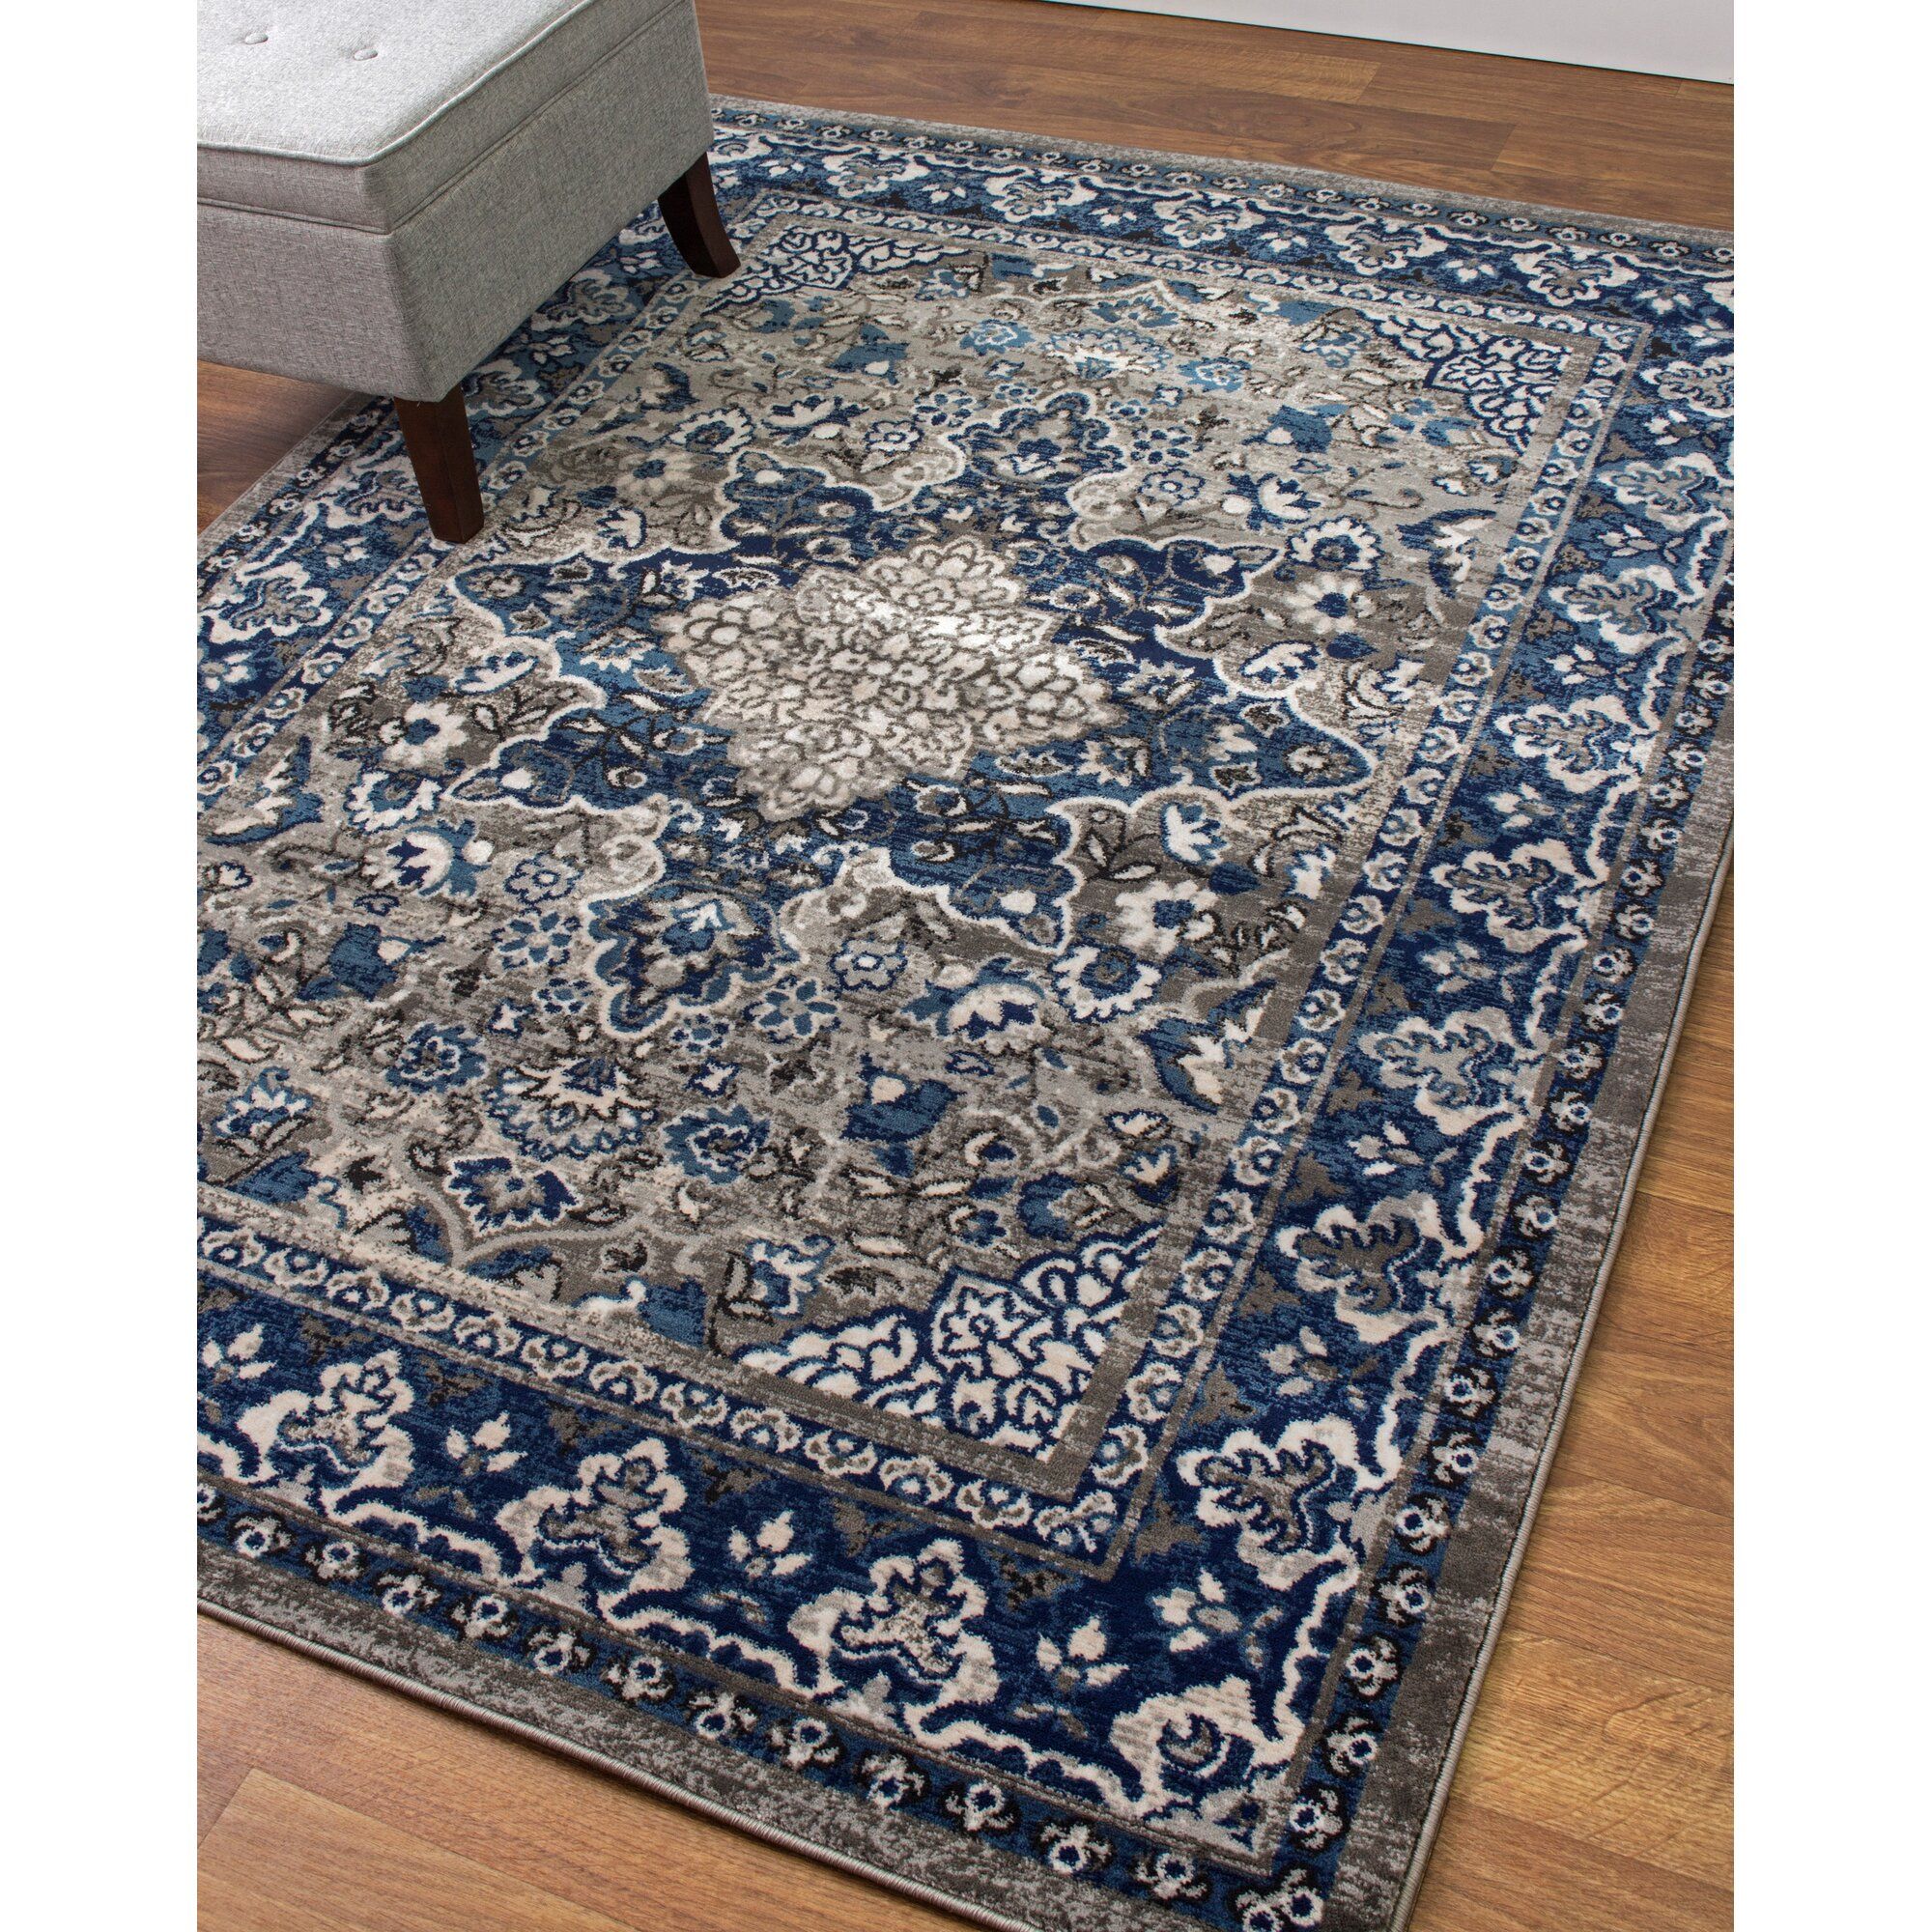 Super Area Rugs Artifact Gray/Blue Area Rug & Reviews ... - photo#48